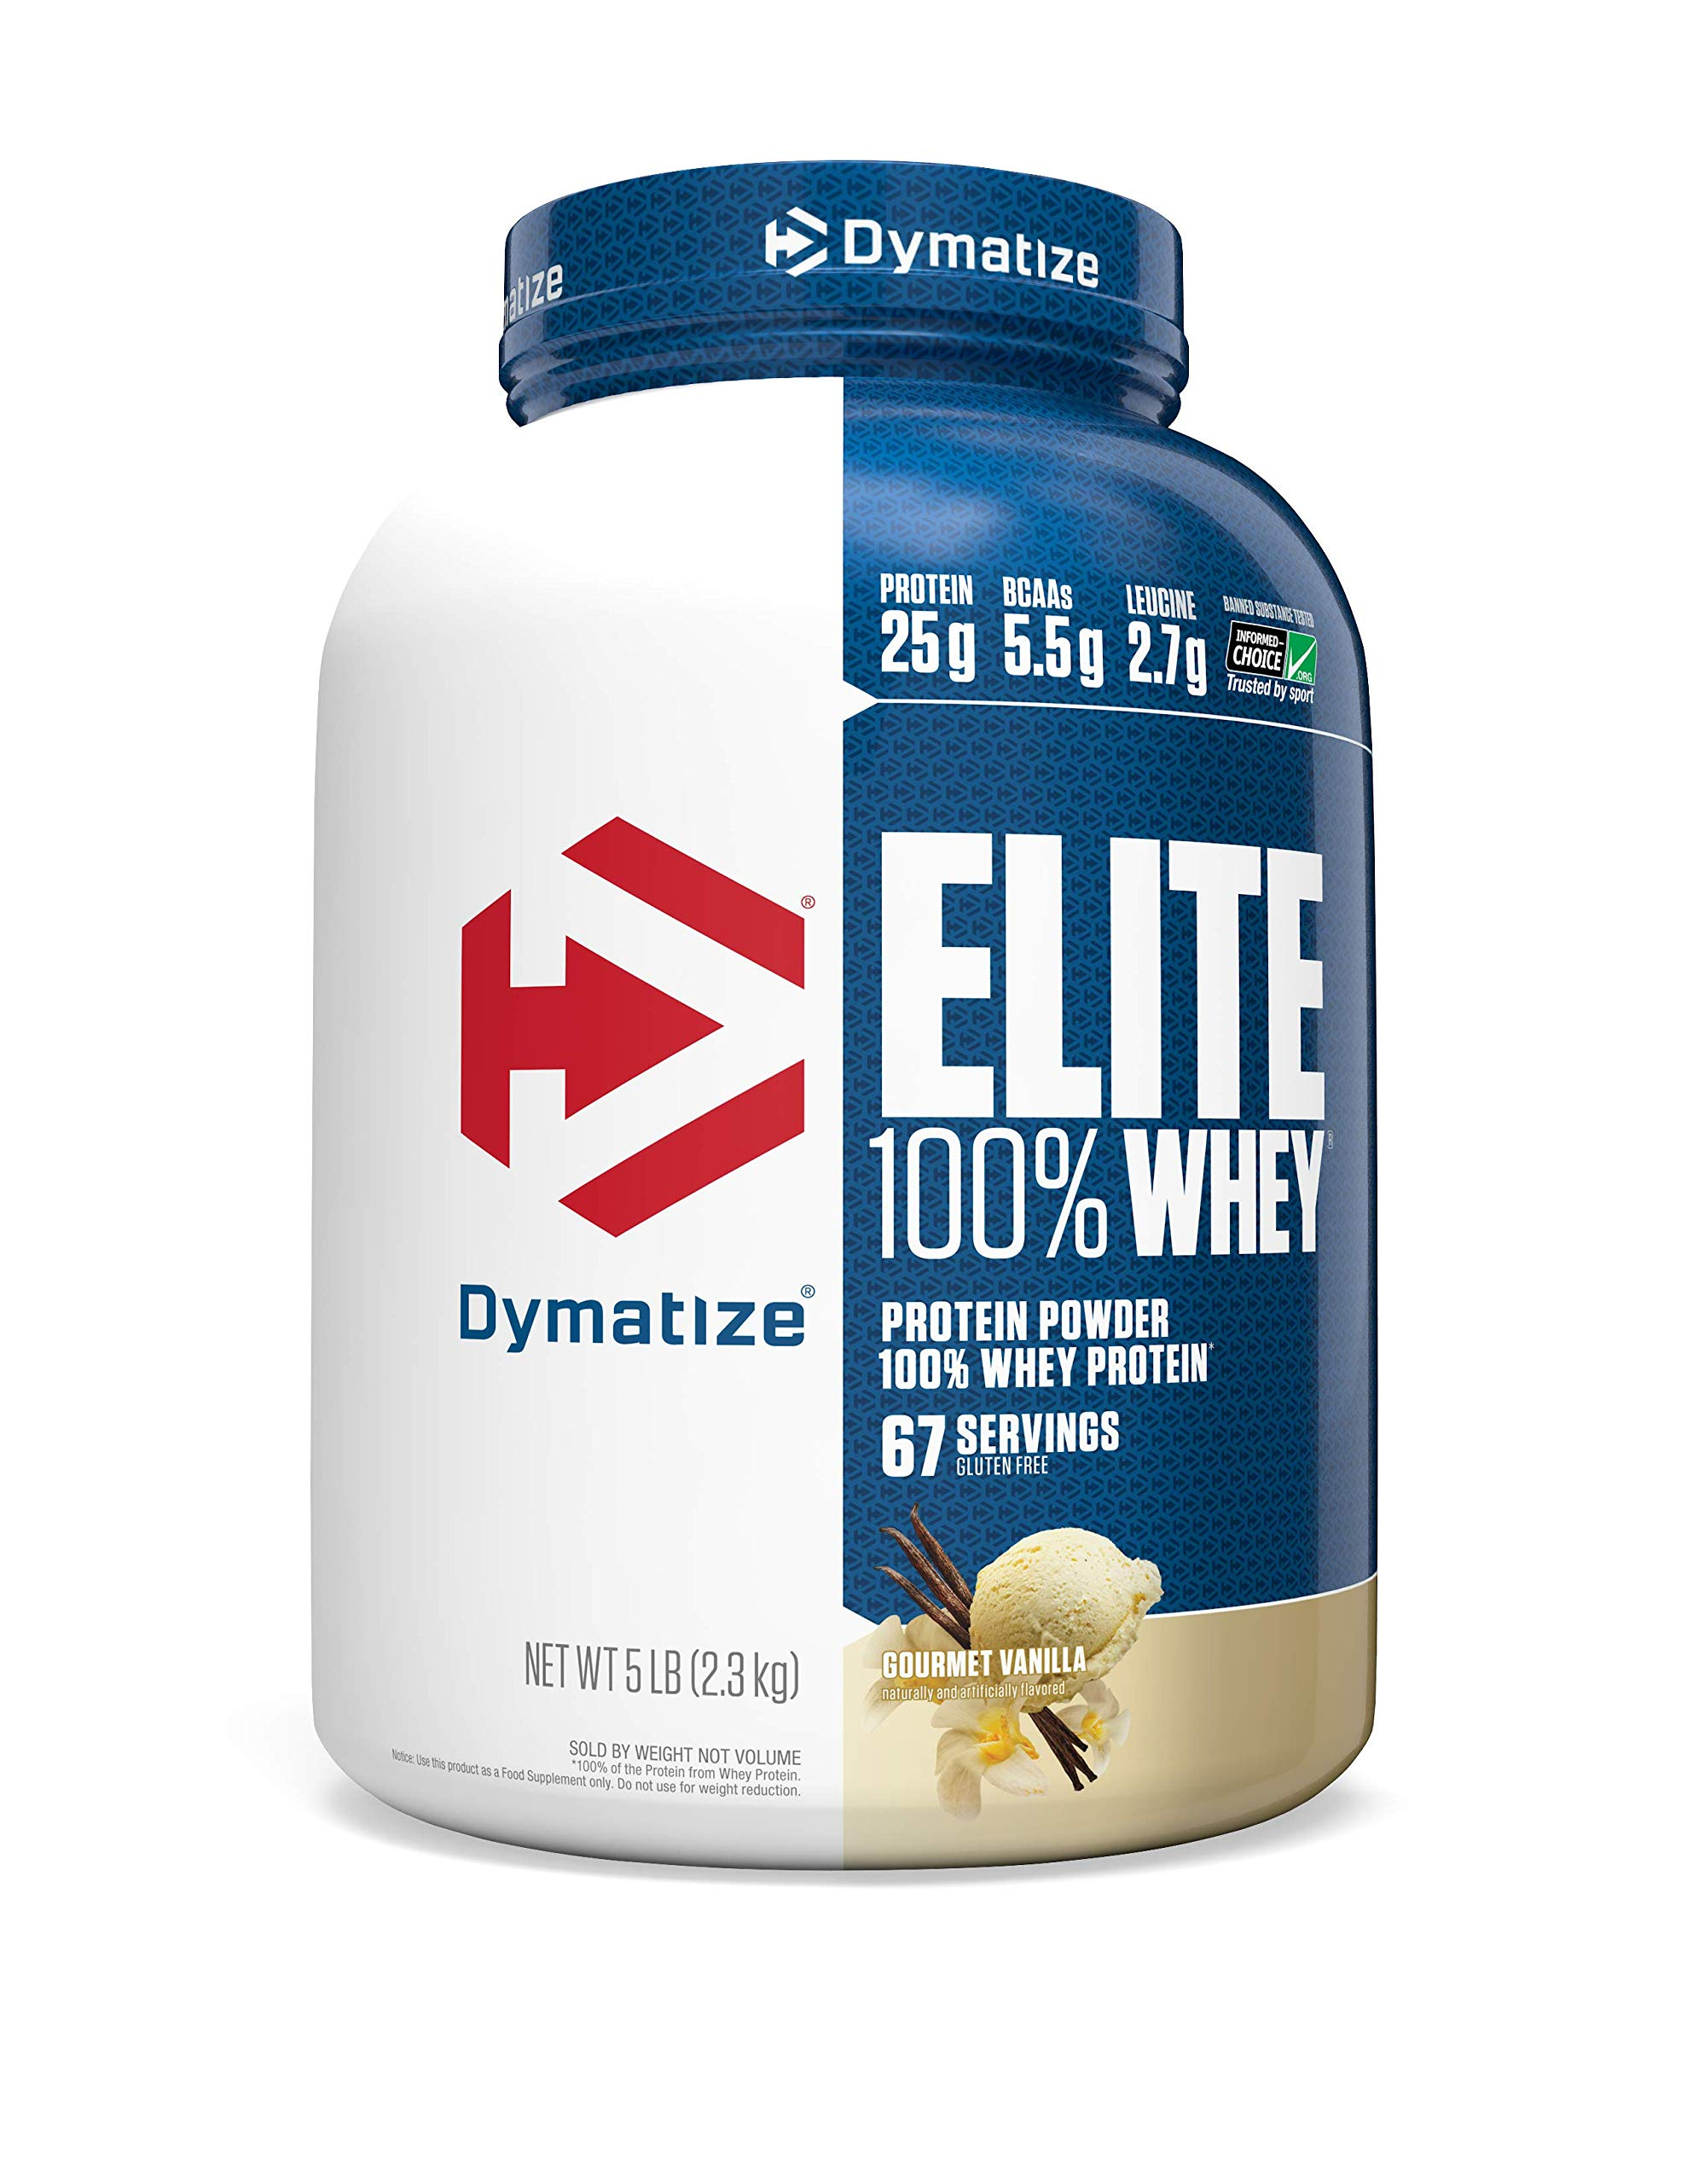 Dymatize Elite 100% Whey Protein Powder, Take Pre Workout or Post Workout, Quick Absorbing & Fast Digesting, Gourmet Vanilla, 5 Pound by Dymatize